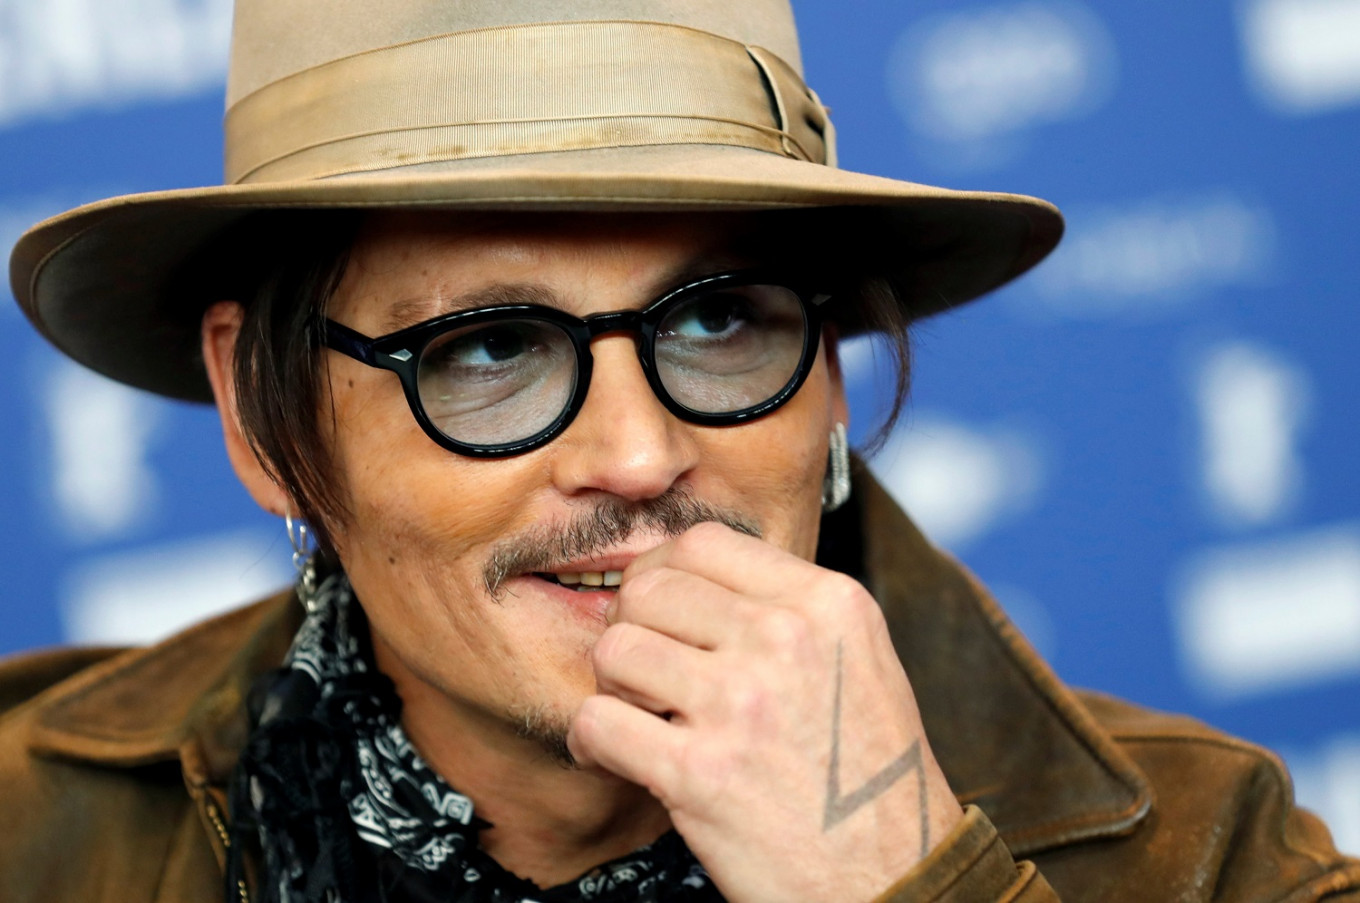 Finding a purpose: Johnny Depp plays a troubled genius in 'Minamata'